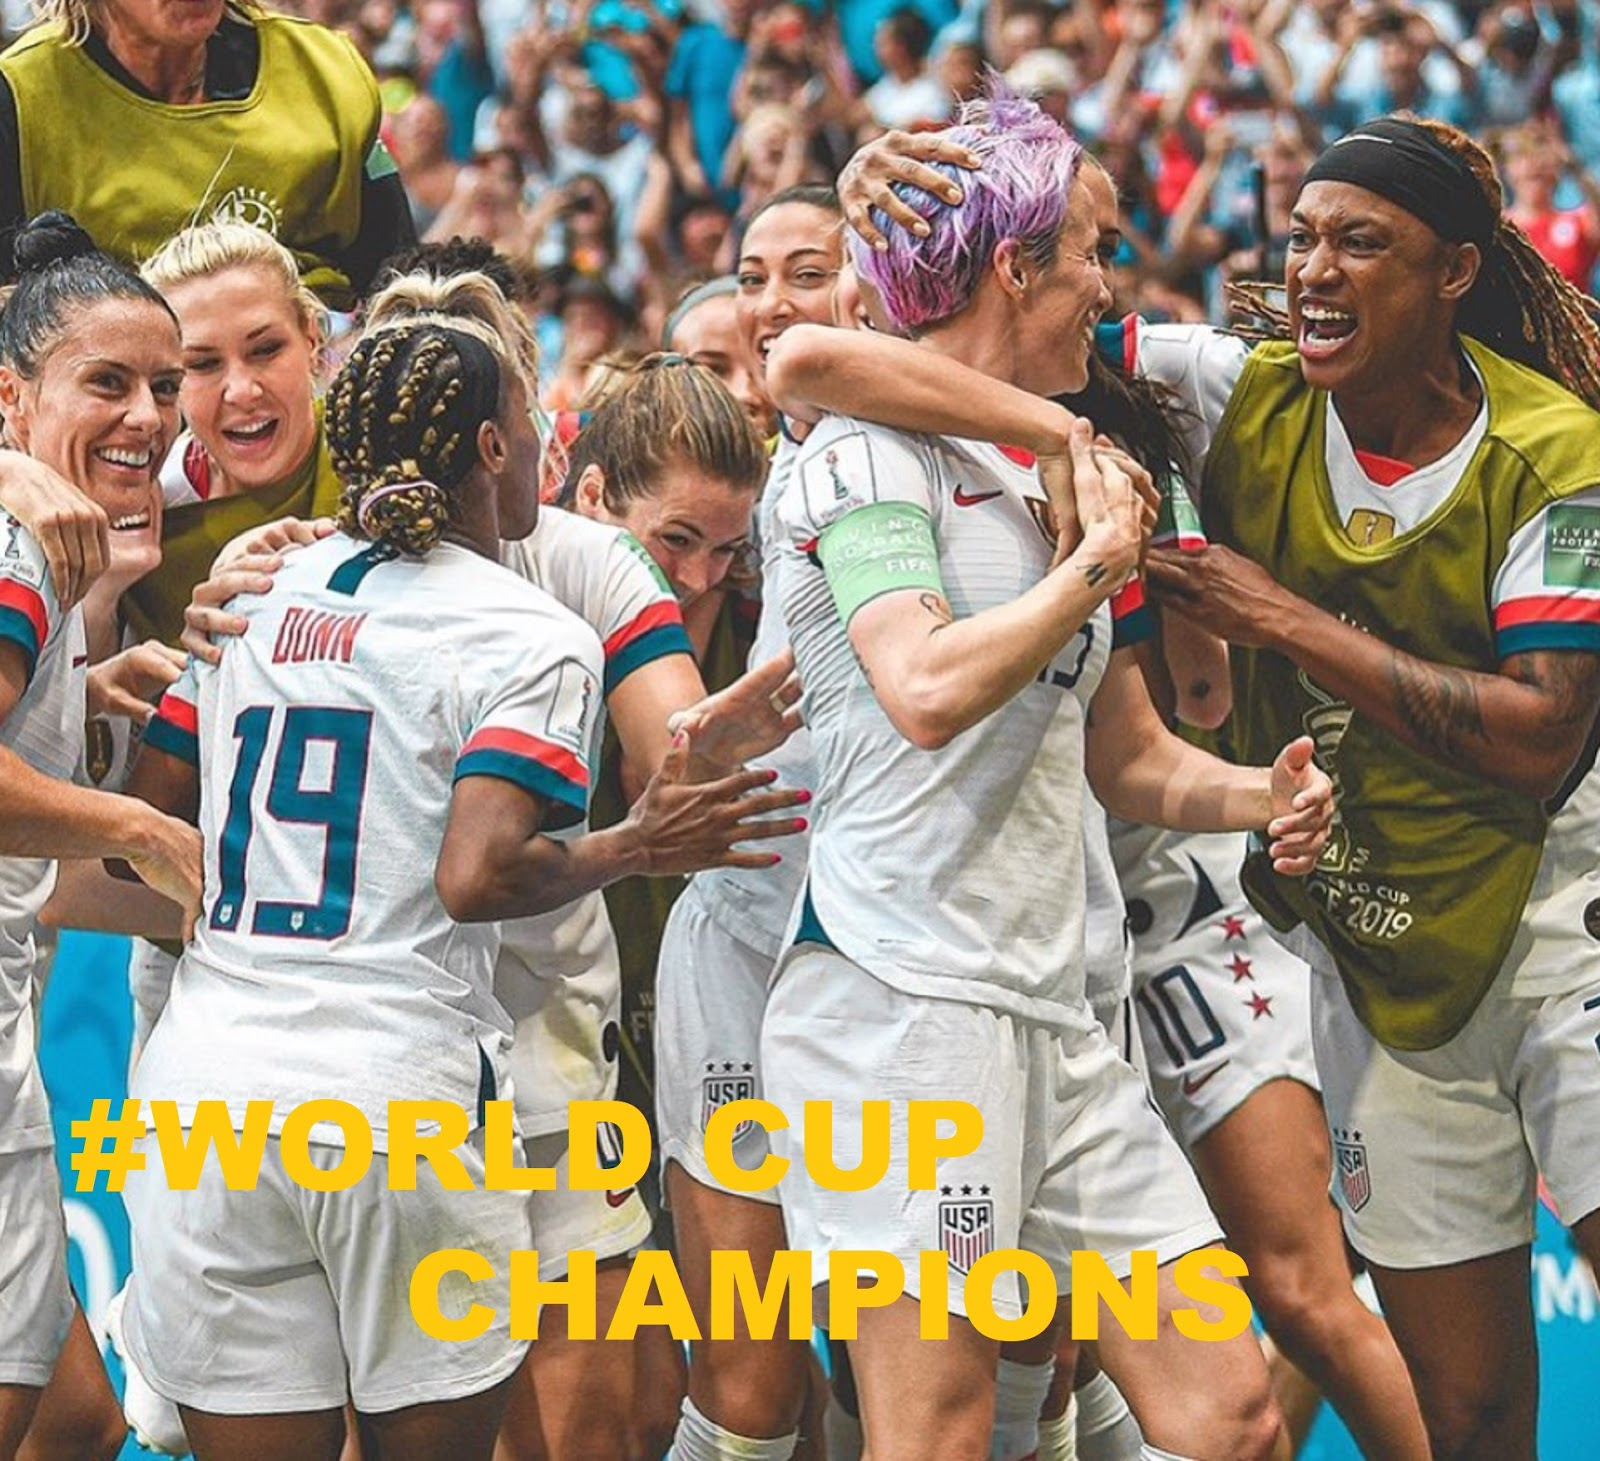 WOMEN'S WORLD CUP 4